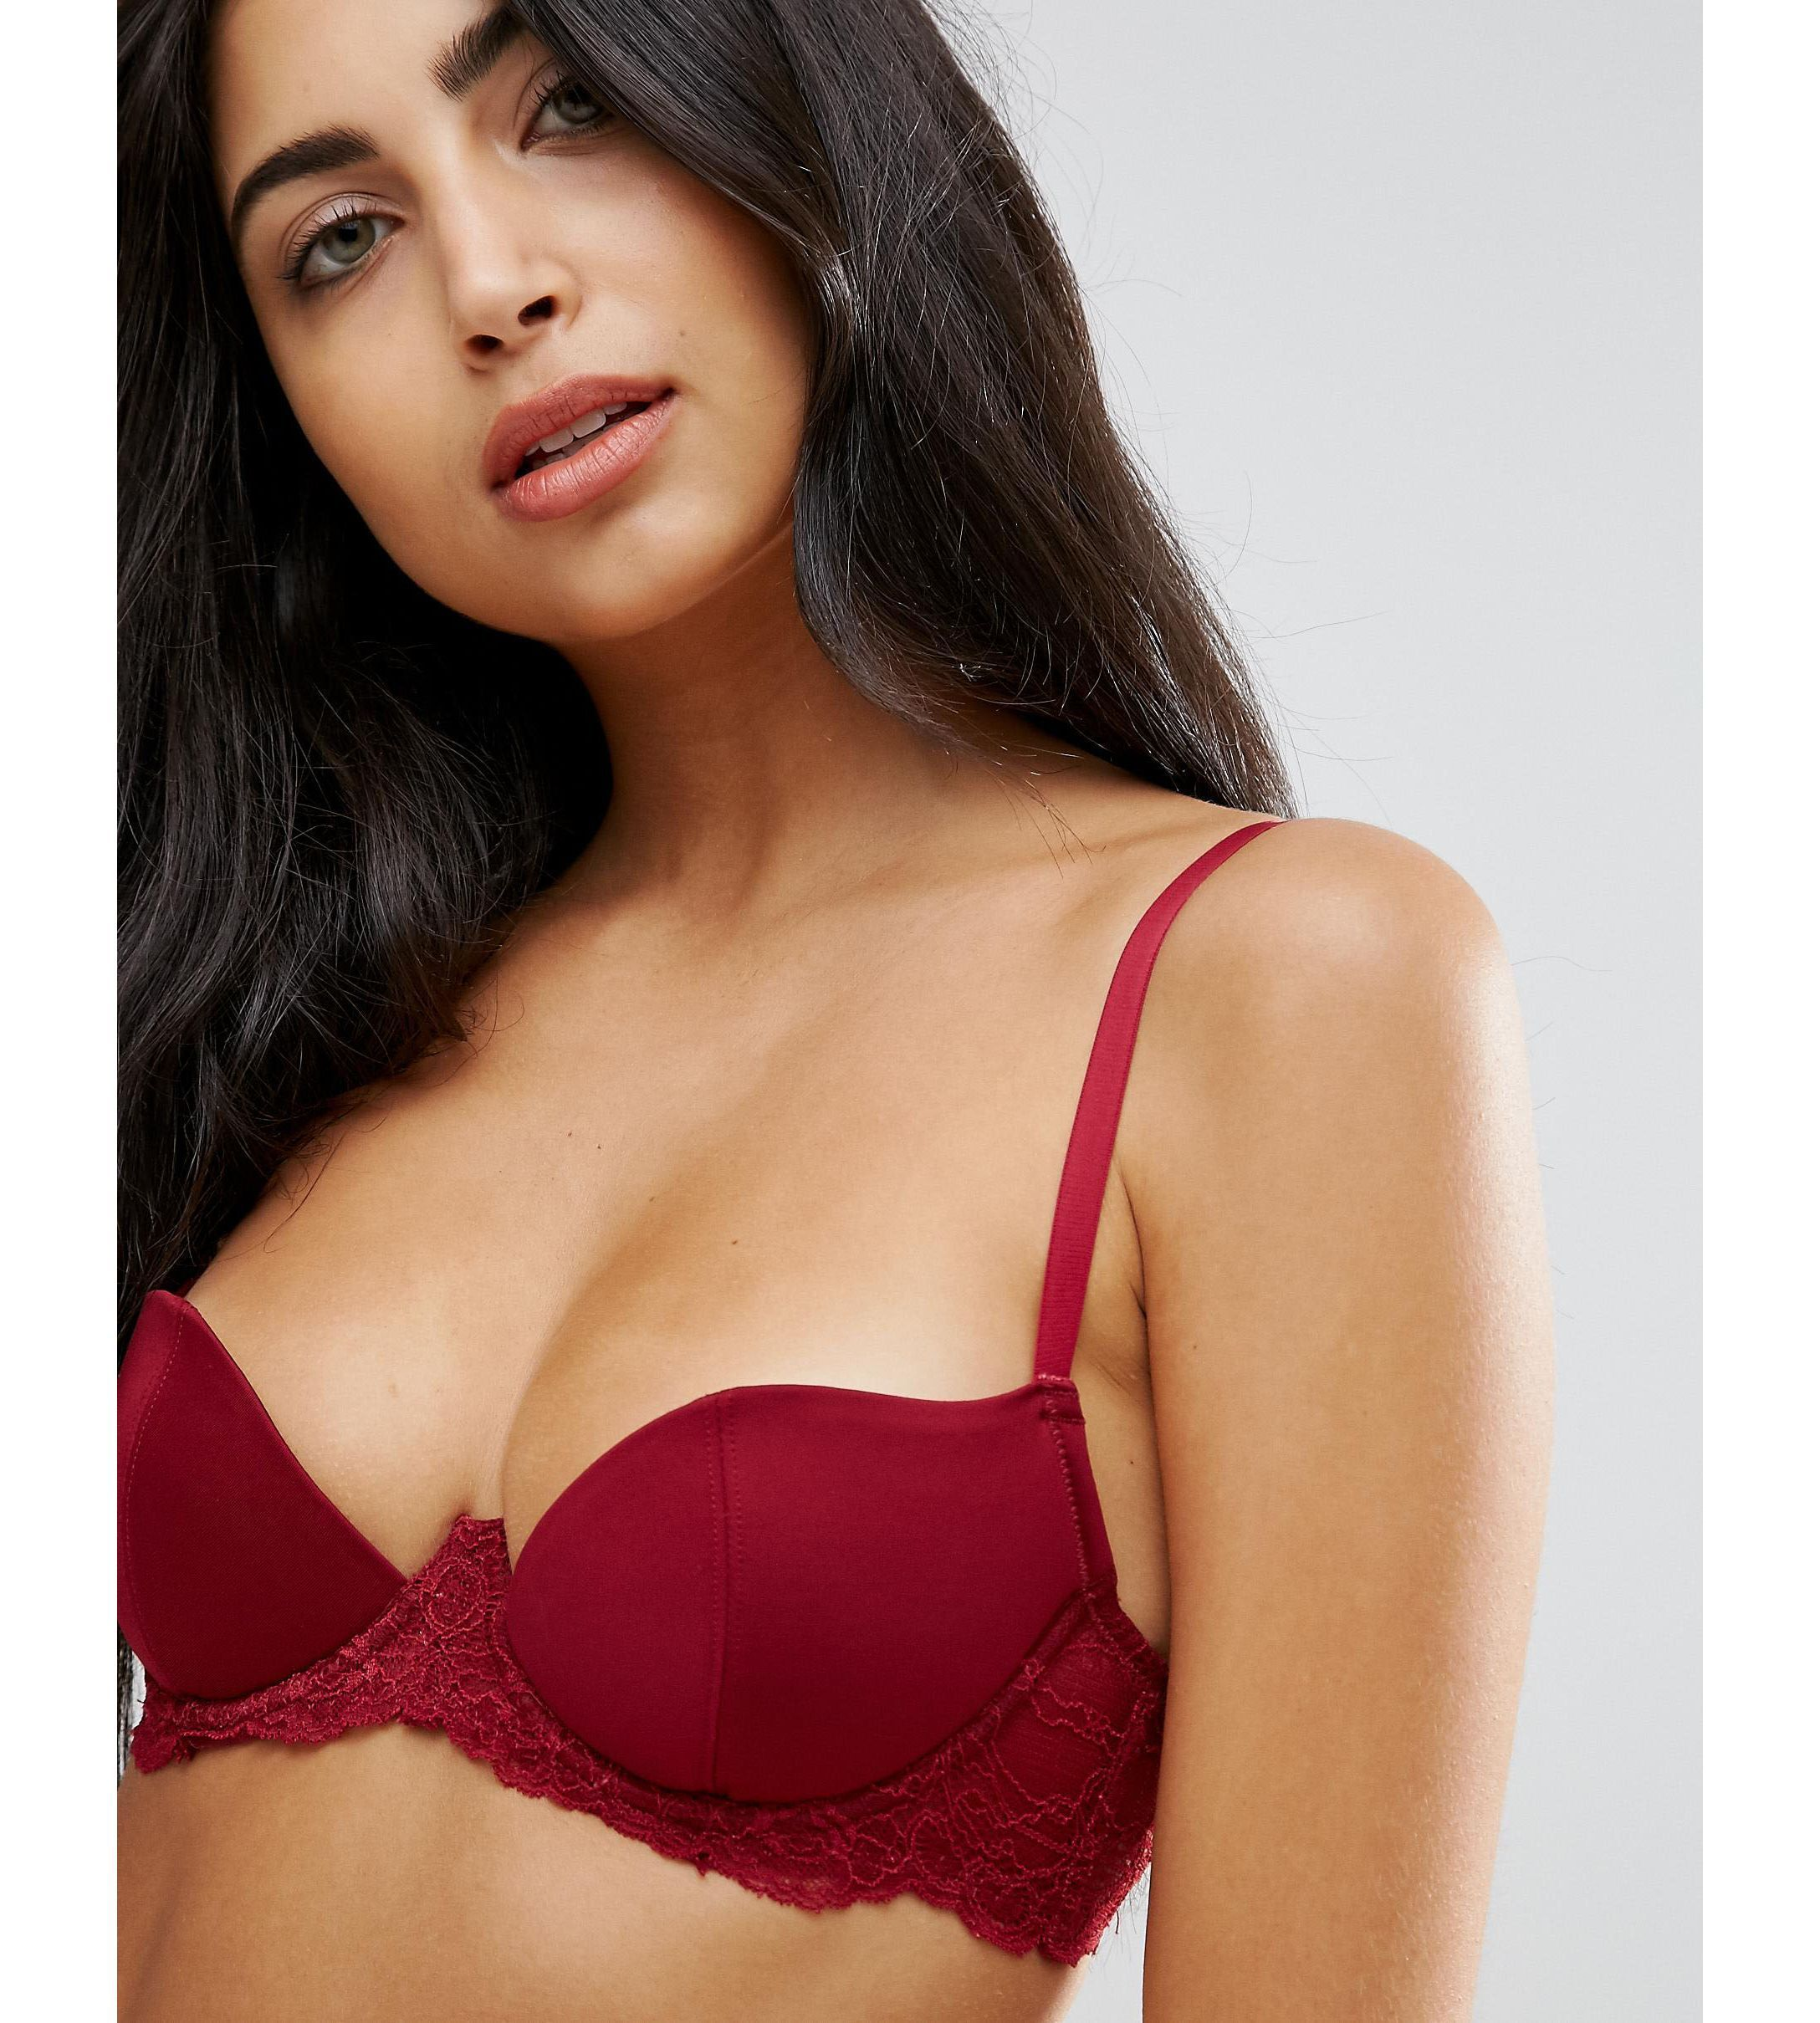 ★ASOS★ Carly Microfibre Moulded Underwire Bra